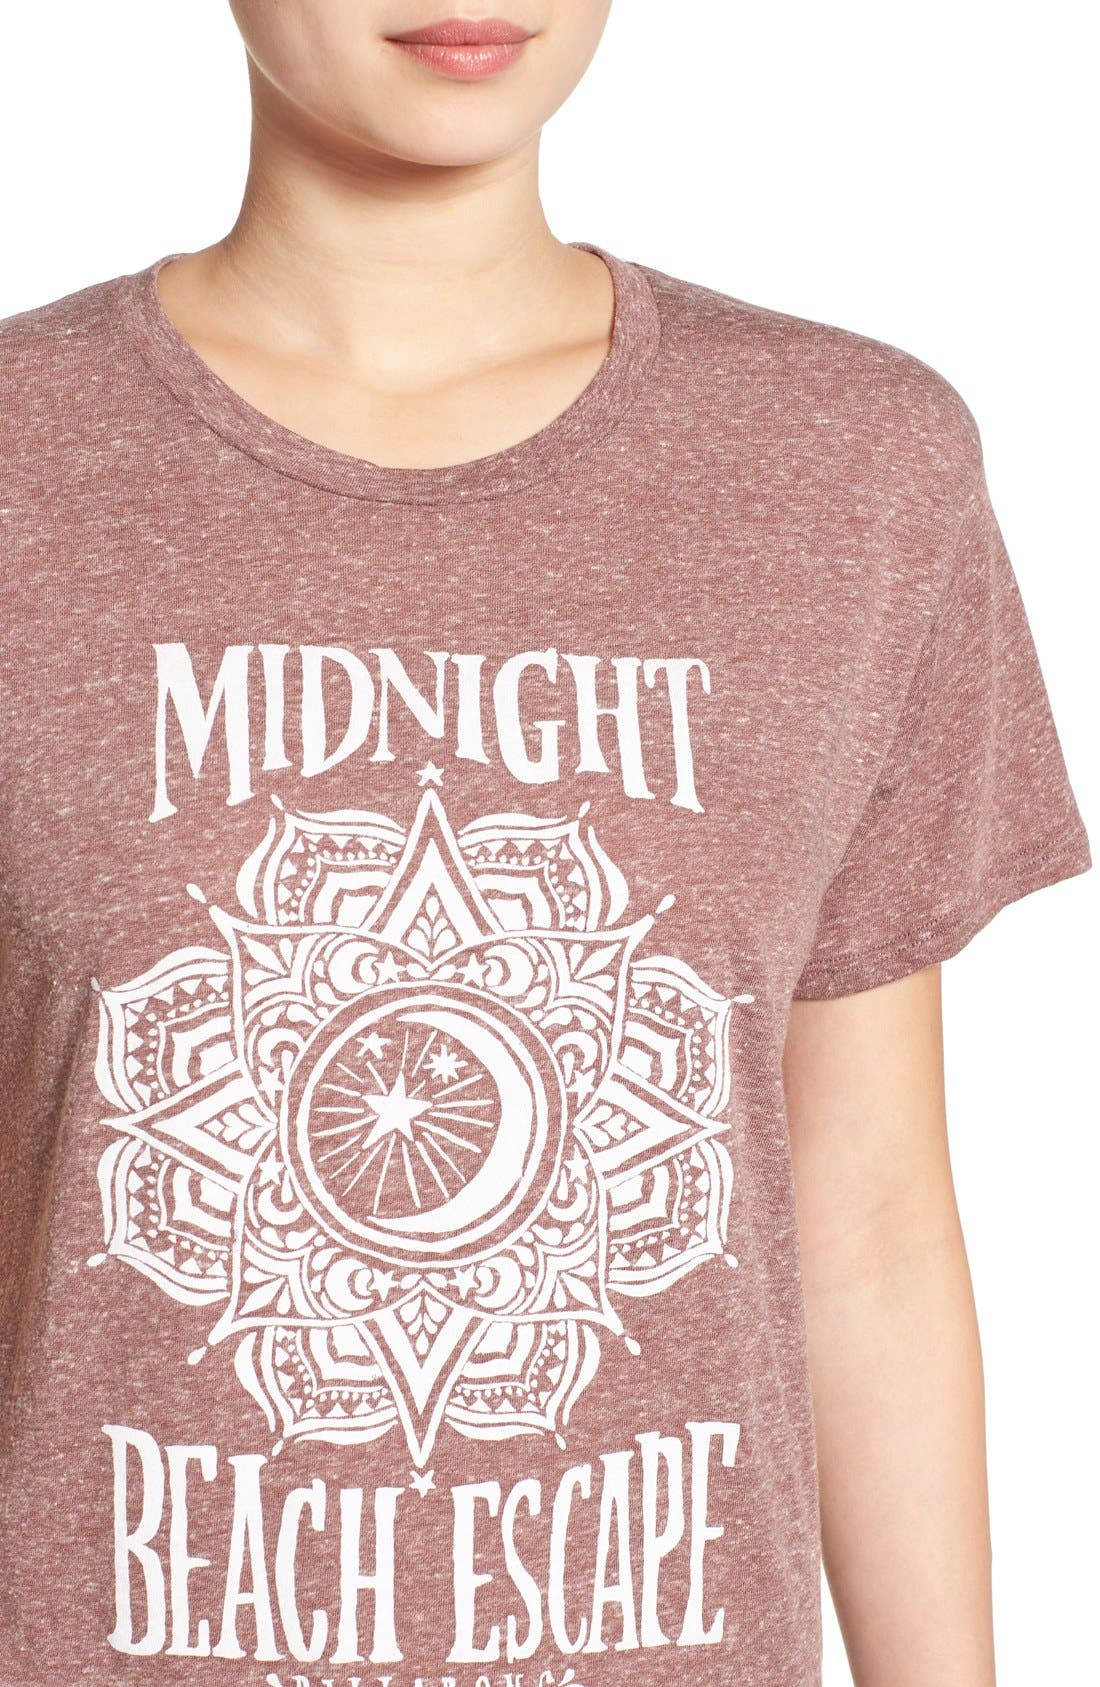 'Midnight Escape' Graphic Tee,                             Alternate thumbnail 3, color,                             930